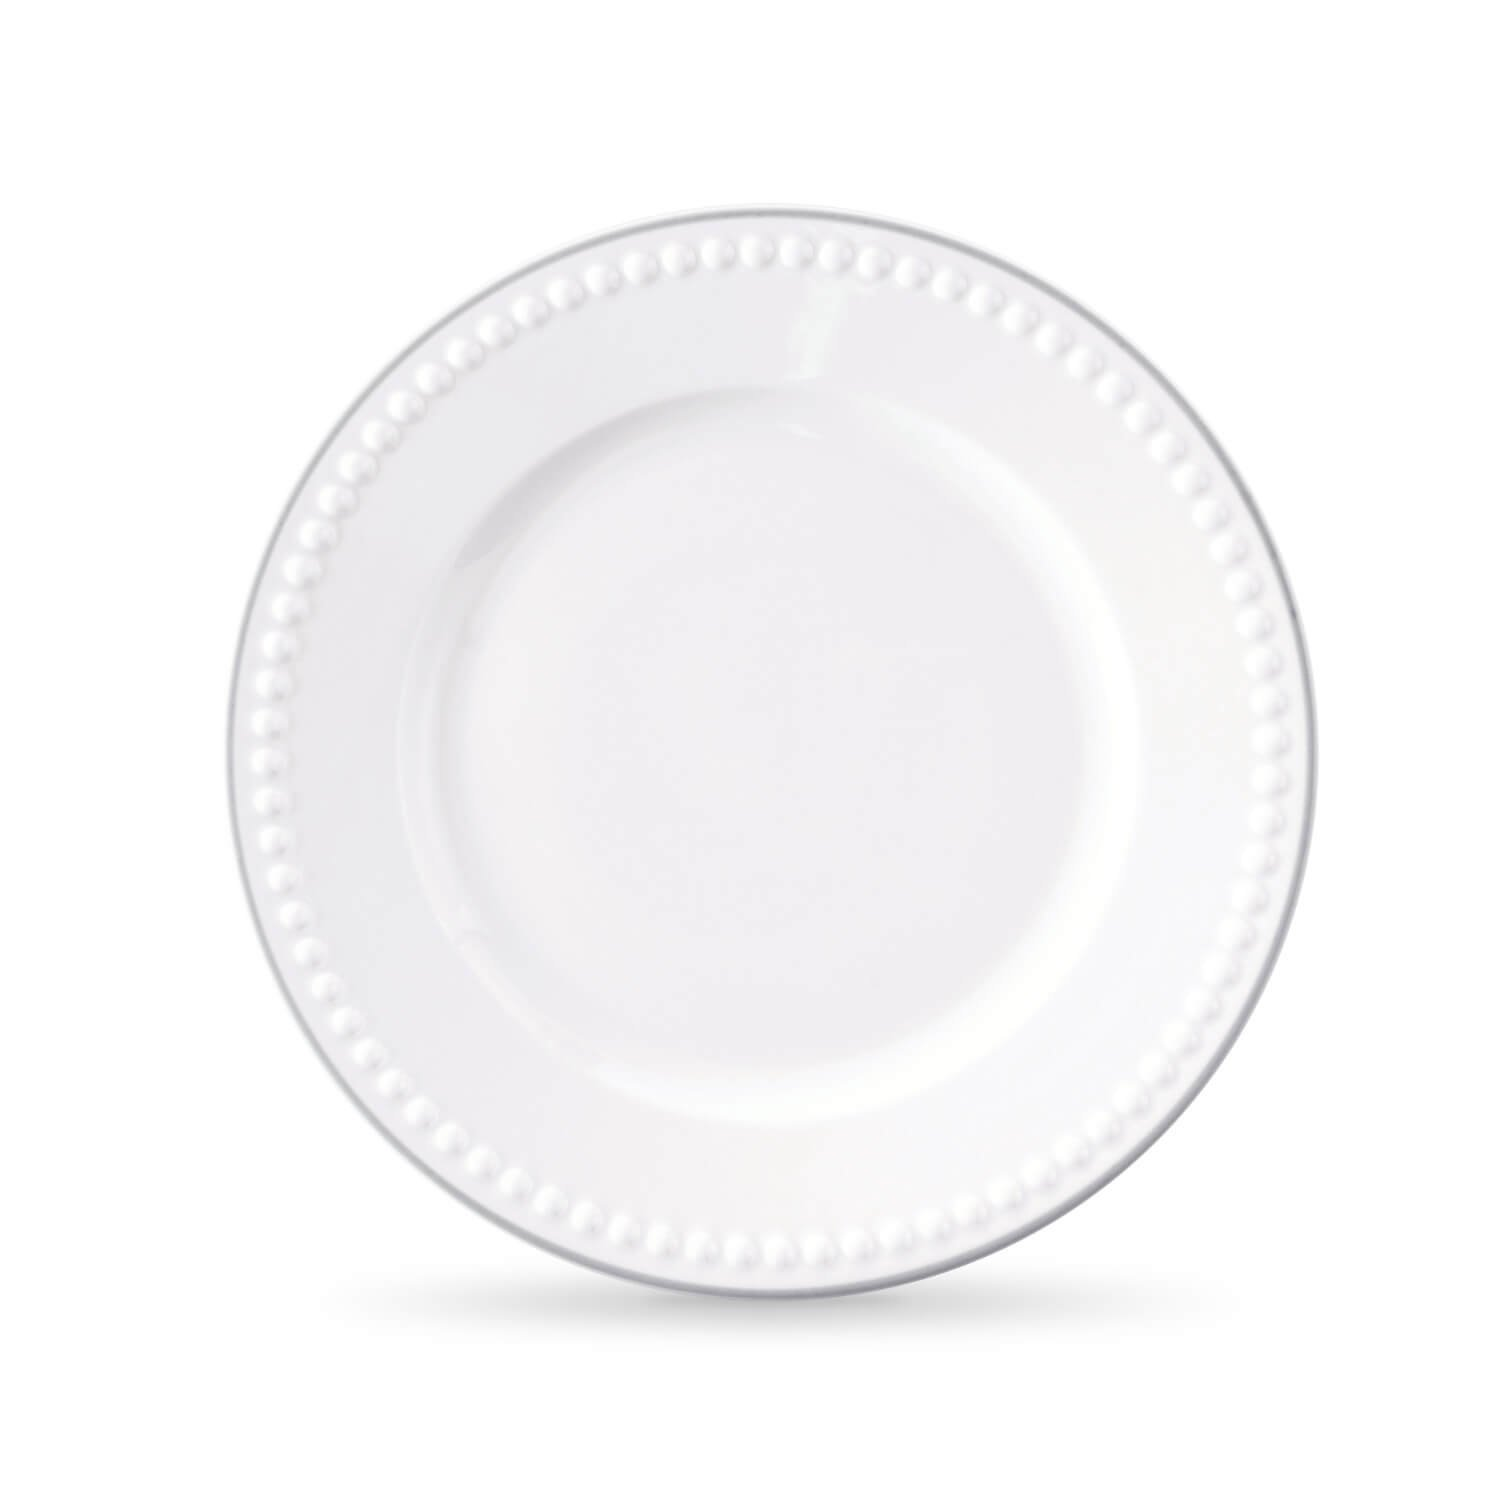 SIGNATURE COLLECTION SIDE PLATE 20cm